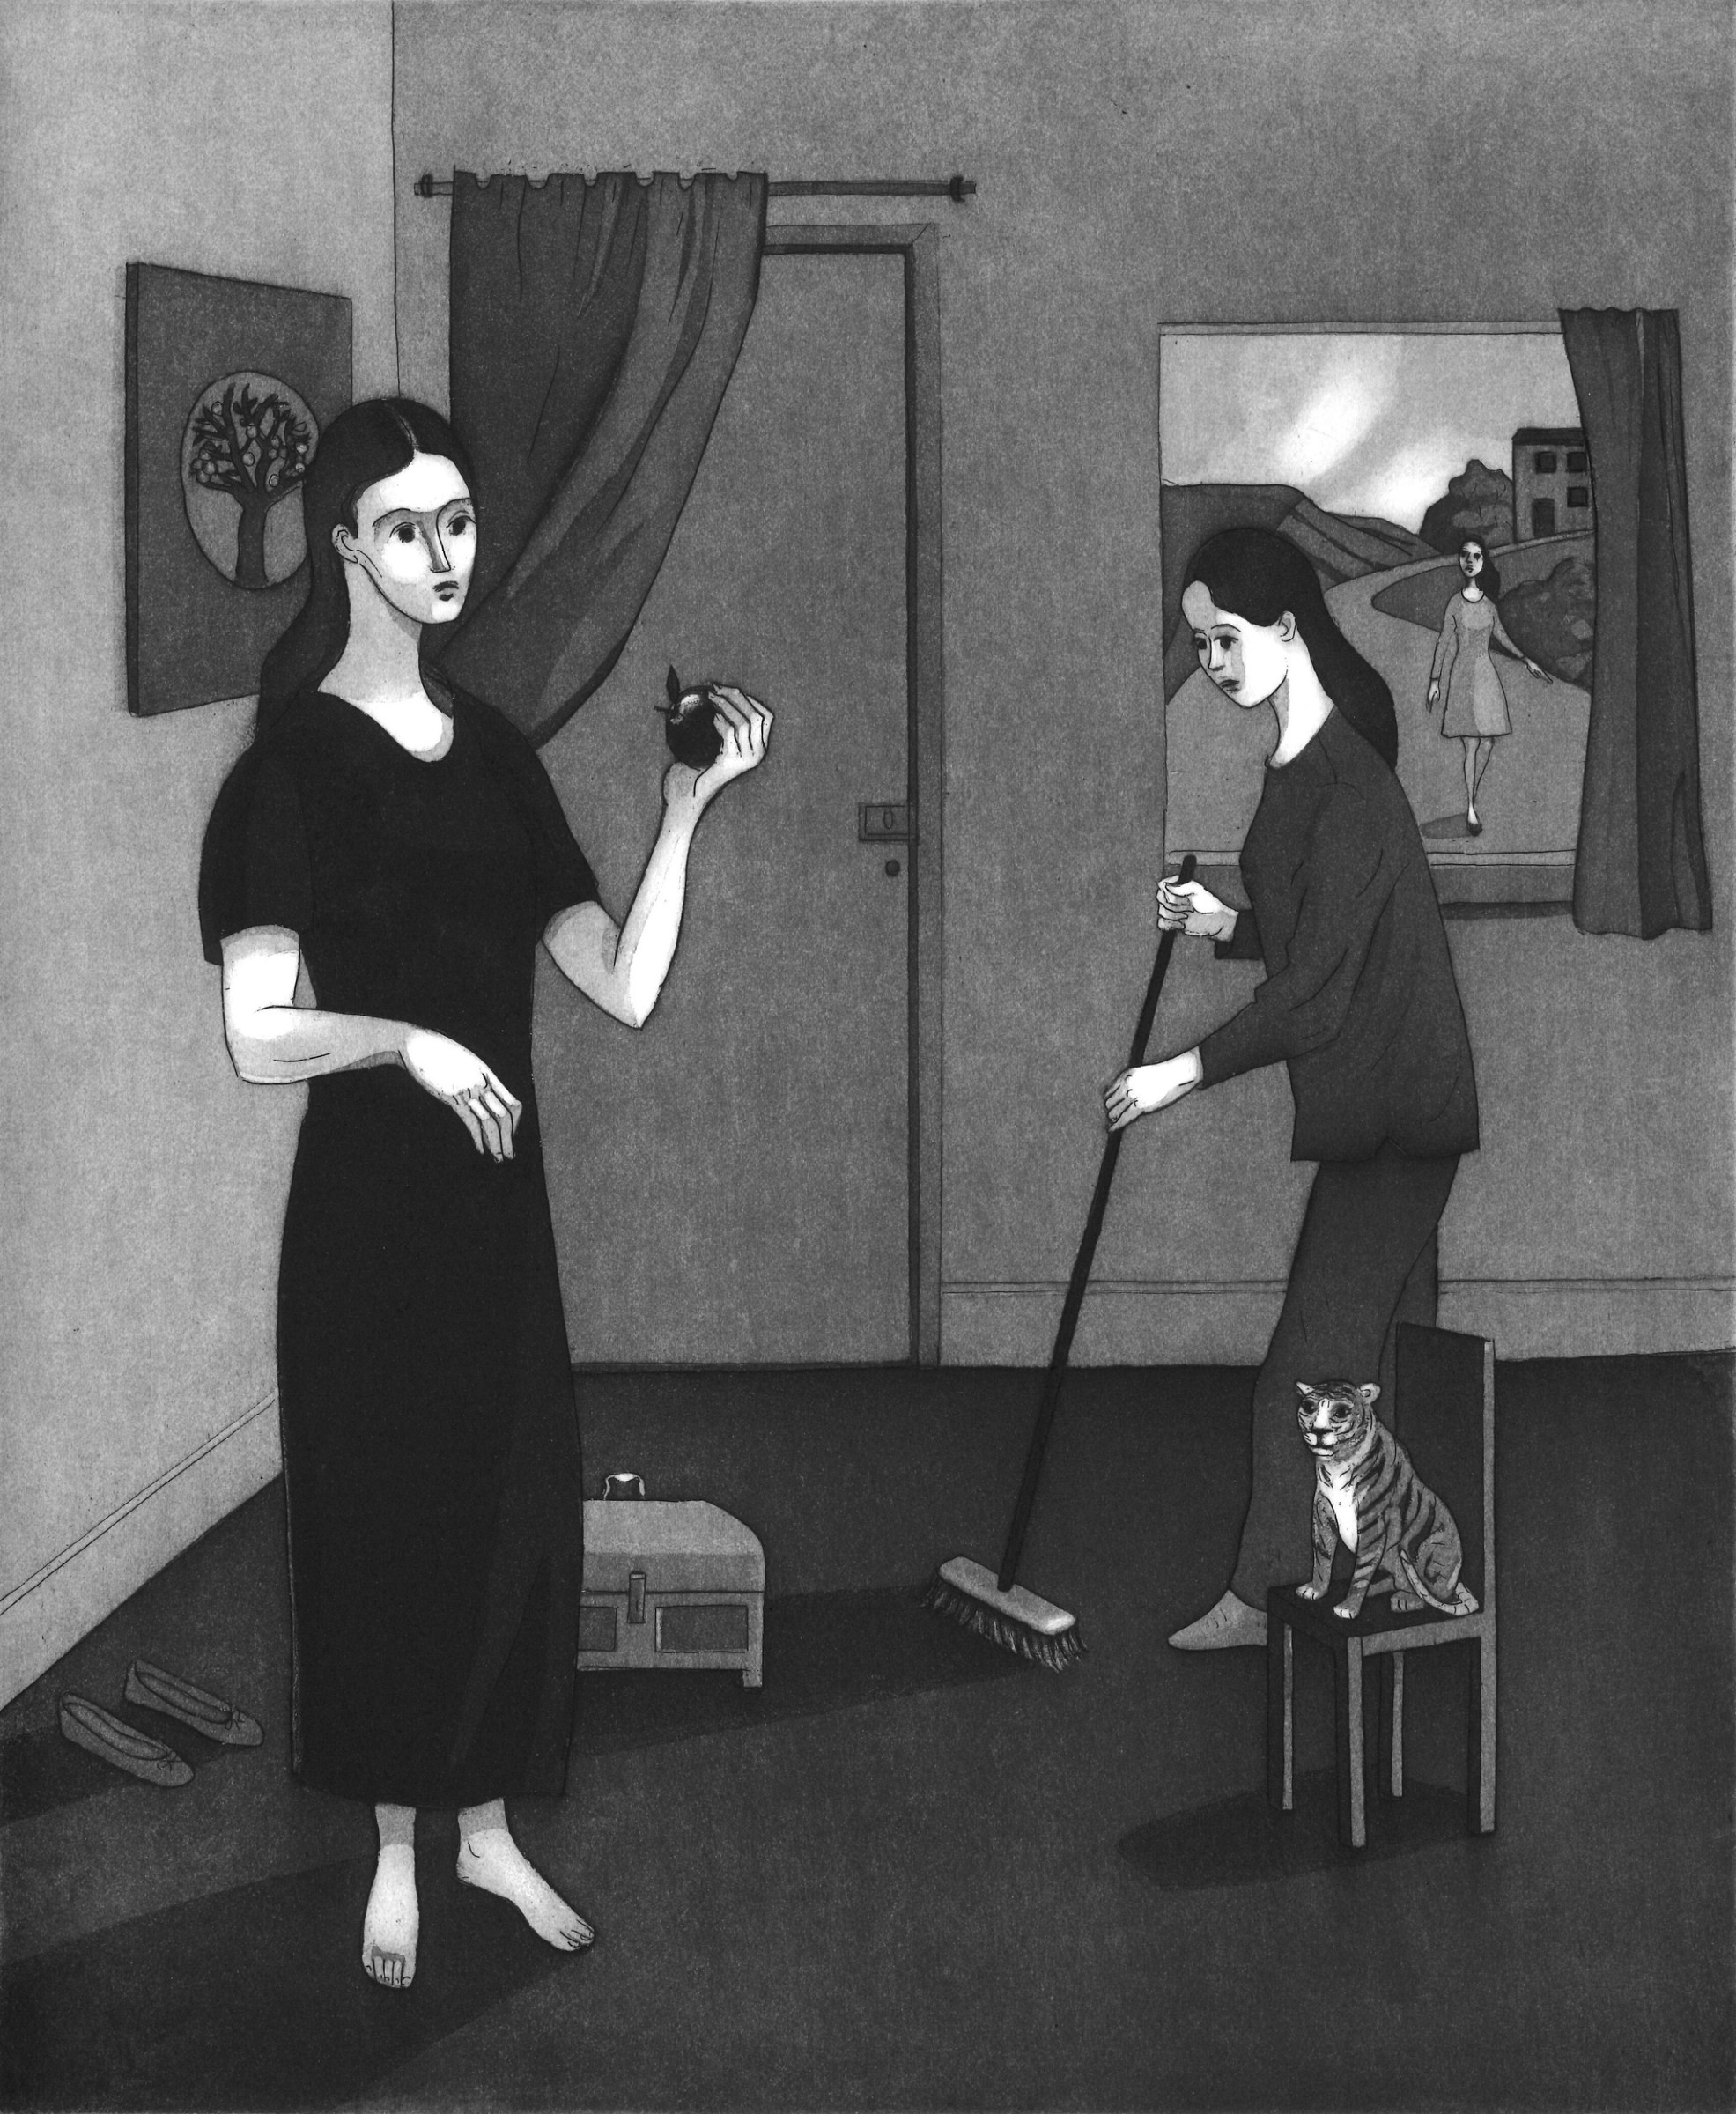 """<span class=""""link fancybox-details-link""""><a href=""""/exhibitions/17/works/image_standalone734/"""">View Detail Page</a></span><p><strong>Sonia Martin</strong></p><p>After the Storm</p><p>etching and aquatint, ed of 20</p><p>48 x 42cm</p><p>£275 framed</p><p>£225 unframed</p>"""